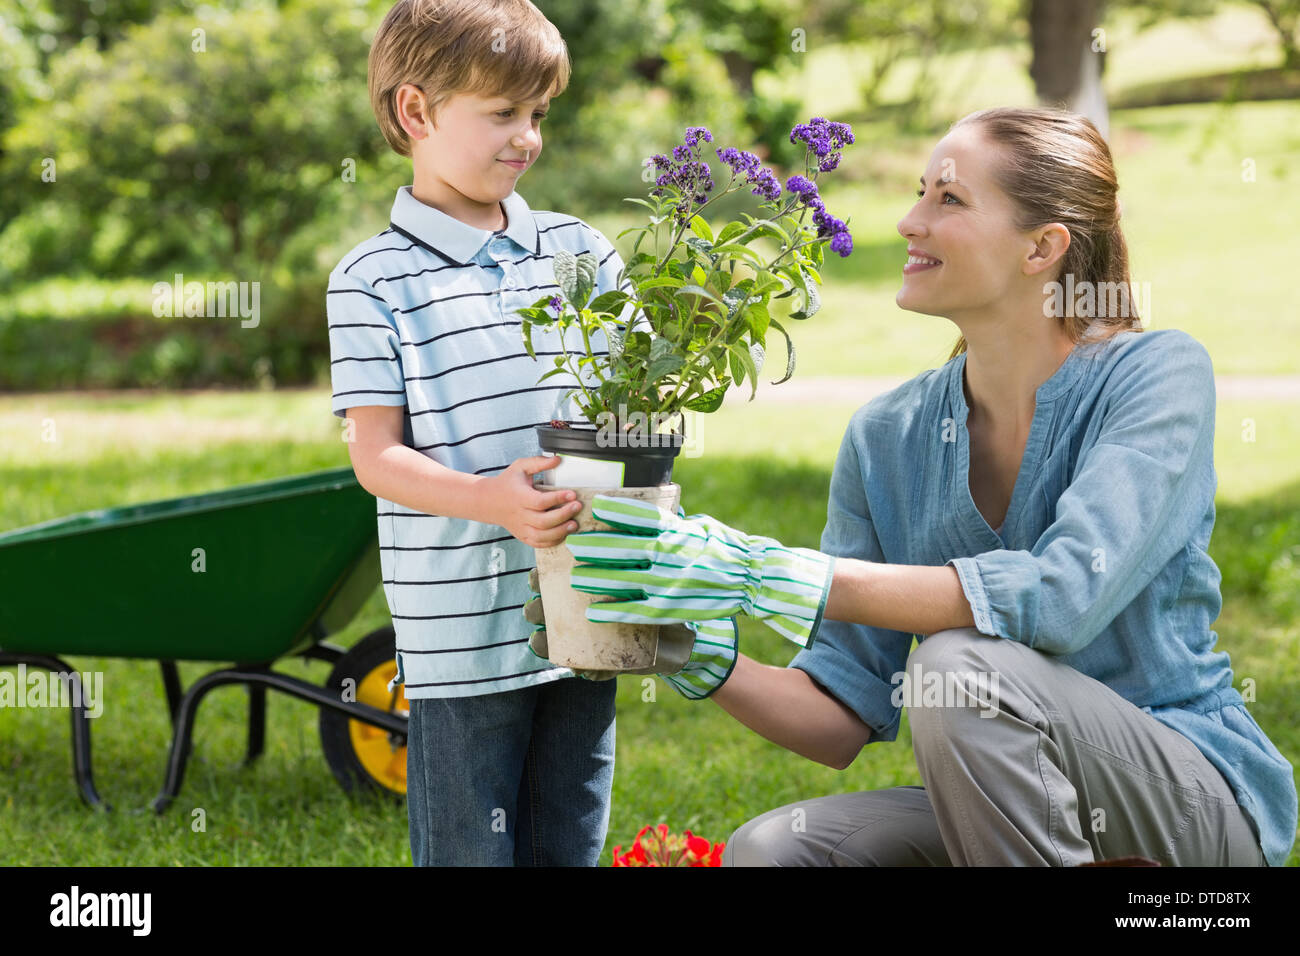 Mother and son gardening - Stock Image